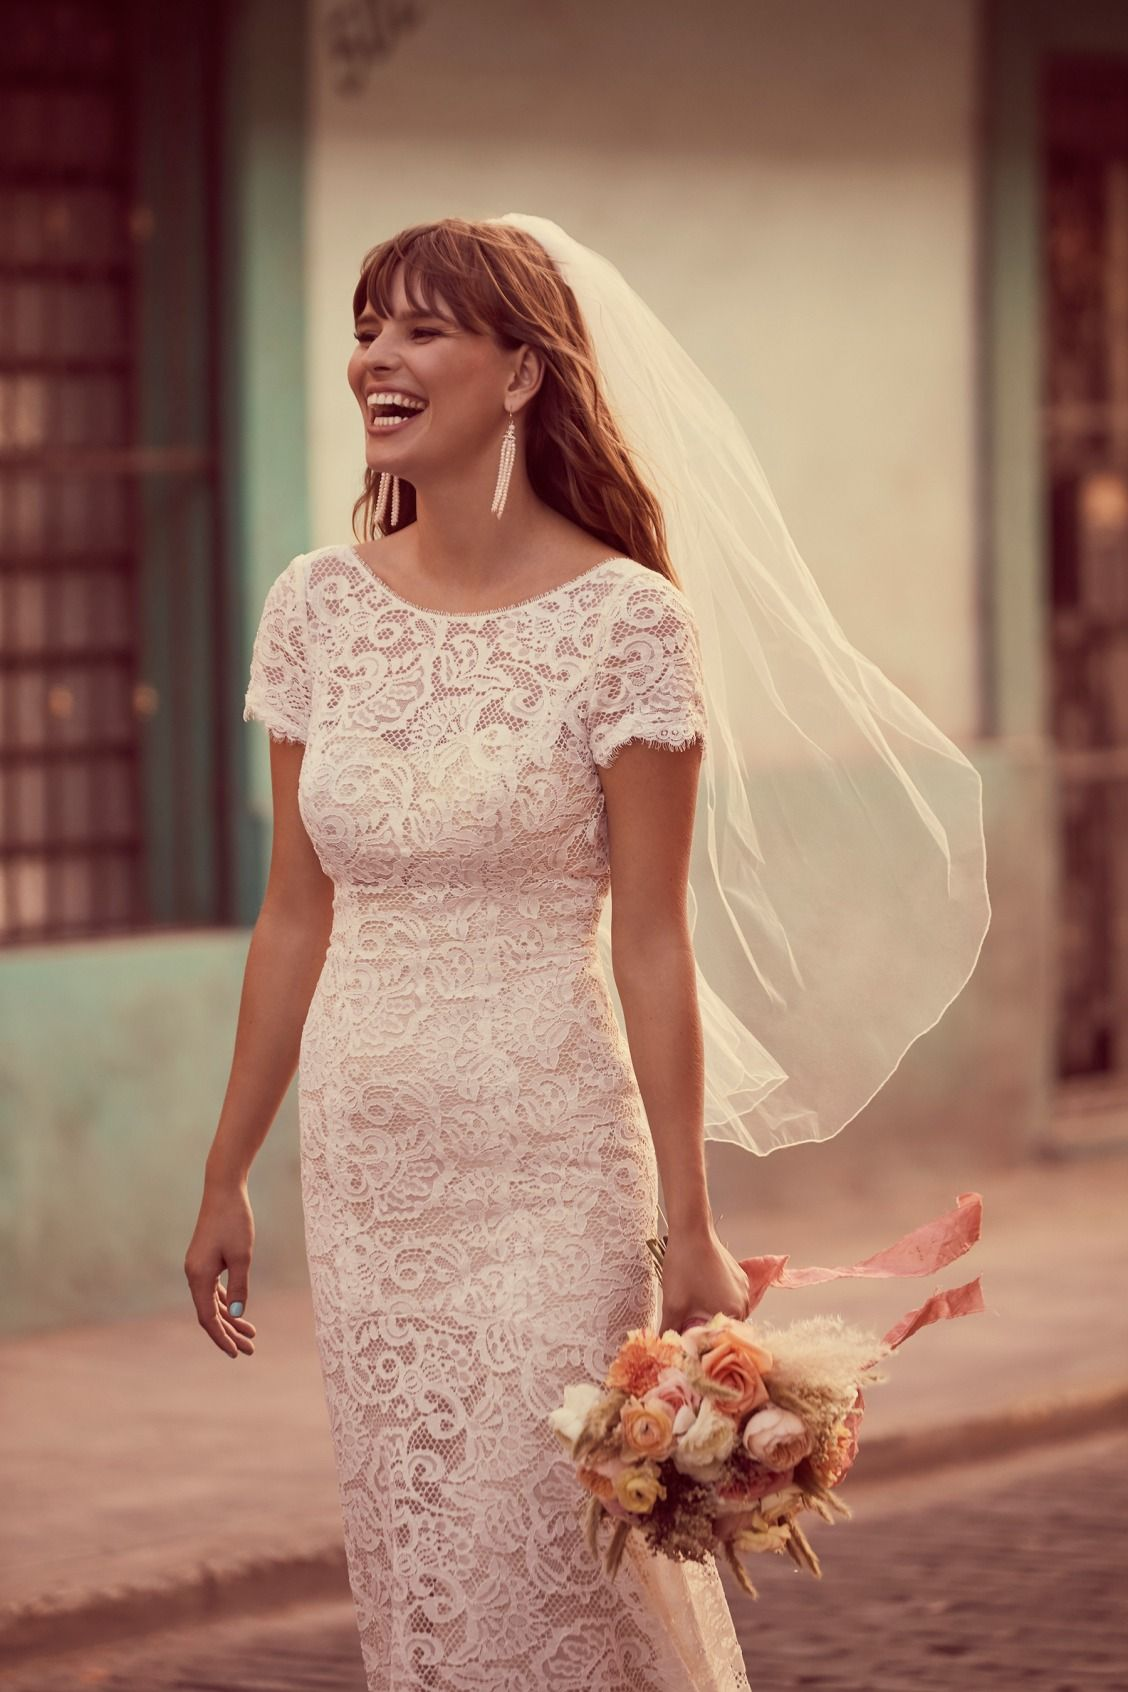 The Veil Makes The Bride Pair A Simple One Tier Veil With A Lace Wedding Dress Short Sleeve Wedding Dress Short Veils Bridal Simple Short Sleeve Wedding Dress [ 1692 x 1128 Pixel ]